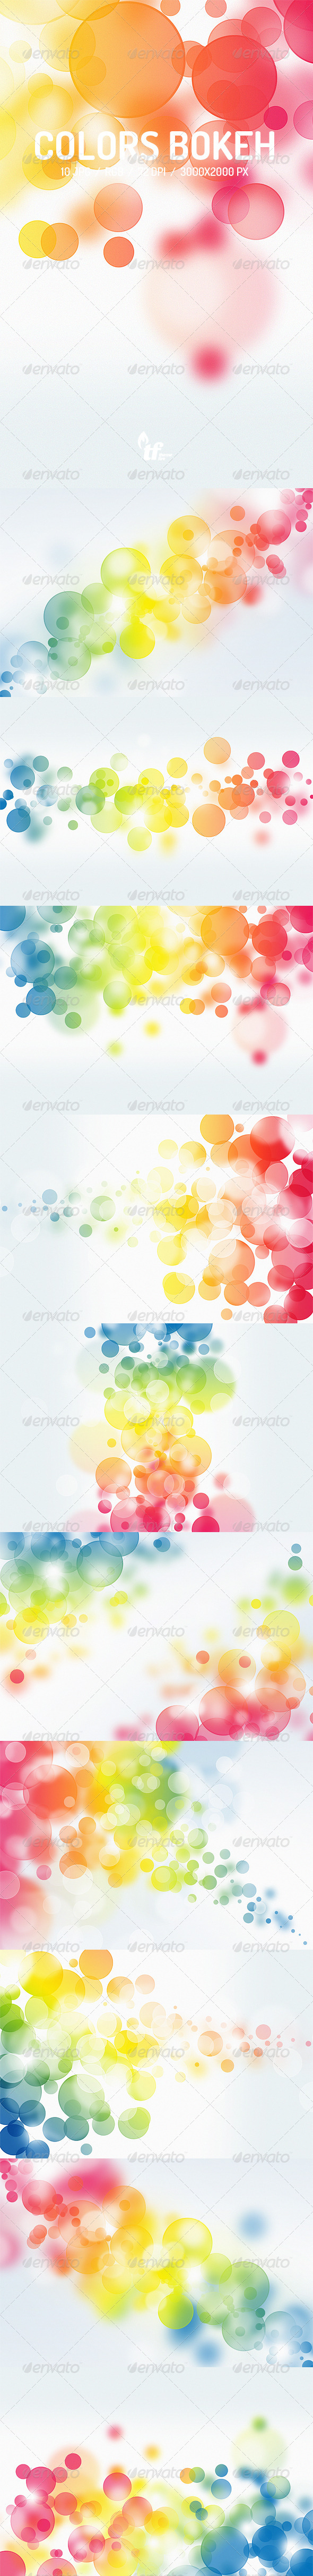 GraphicRiver Colors Bokeh Backgrounds 7854527